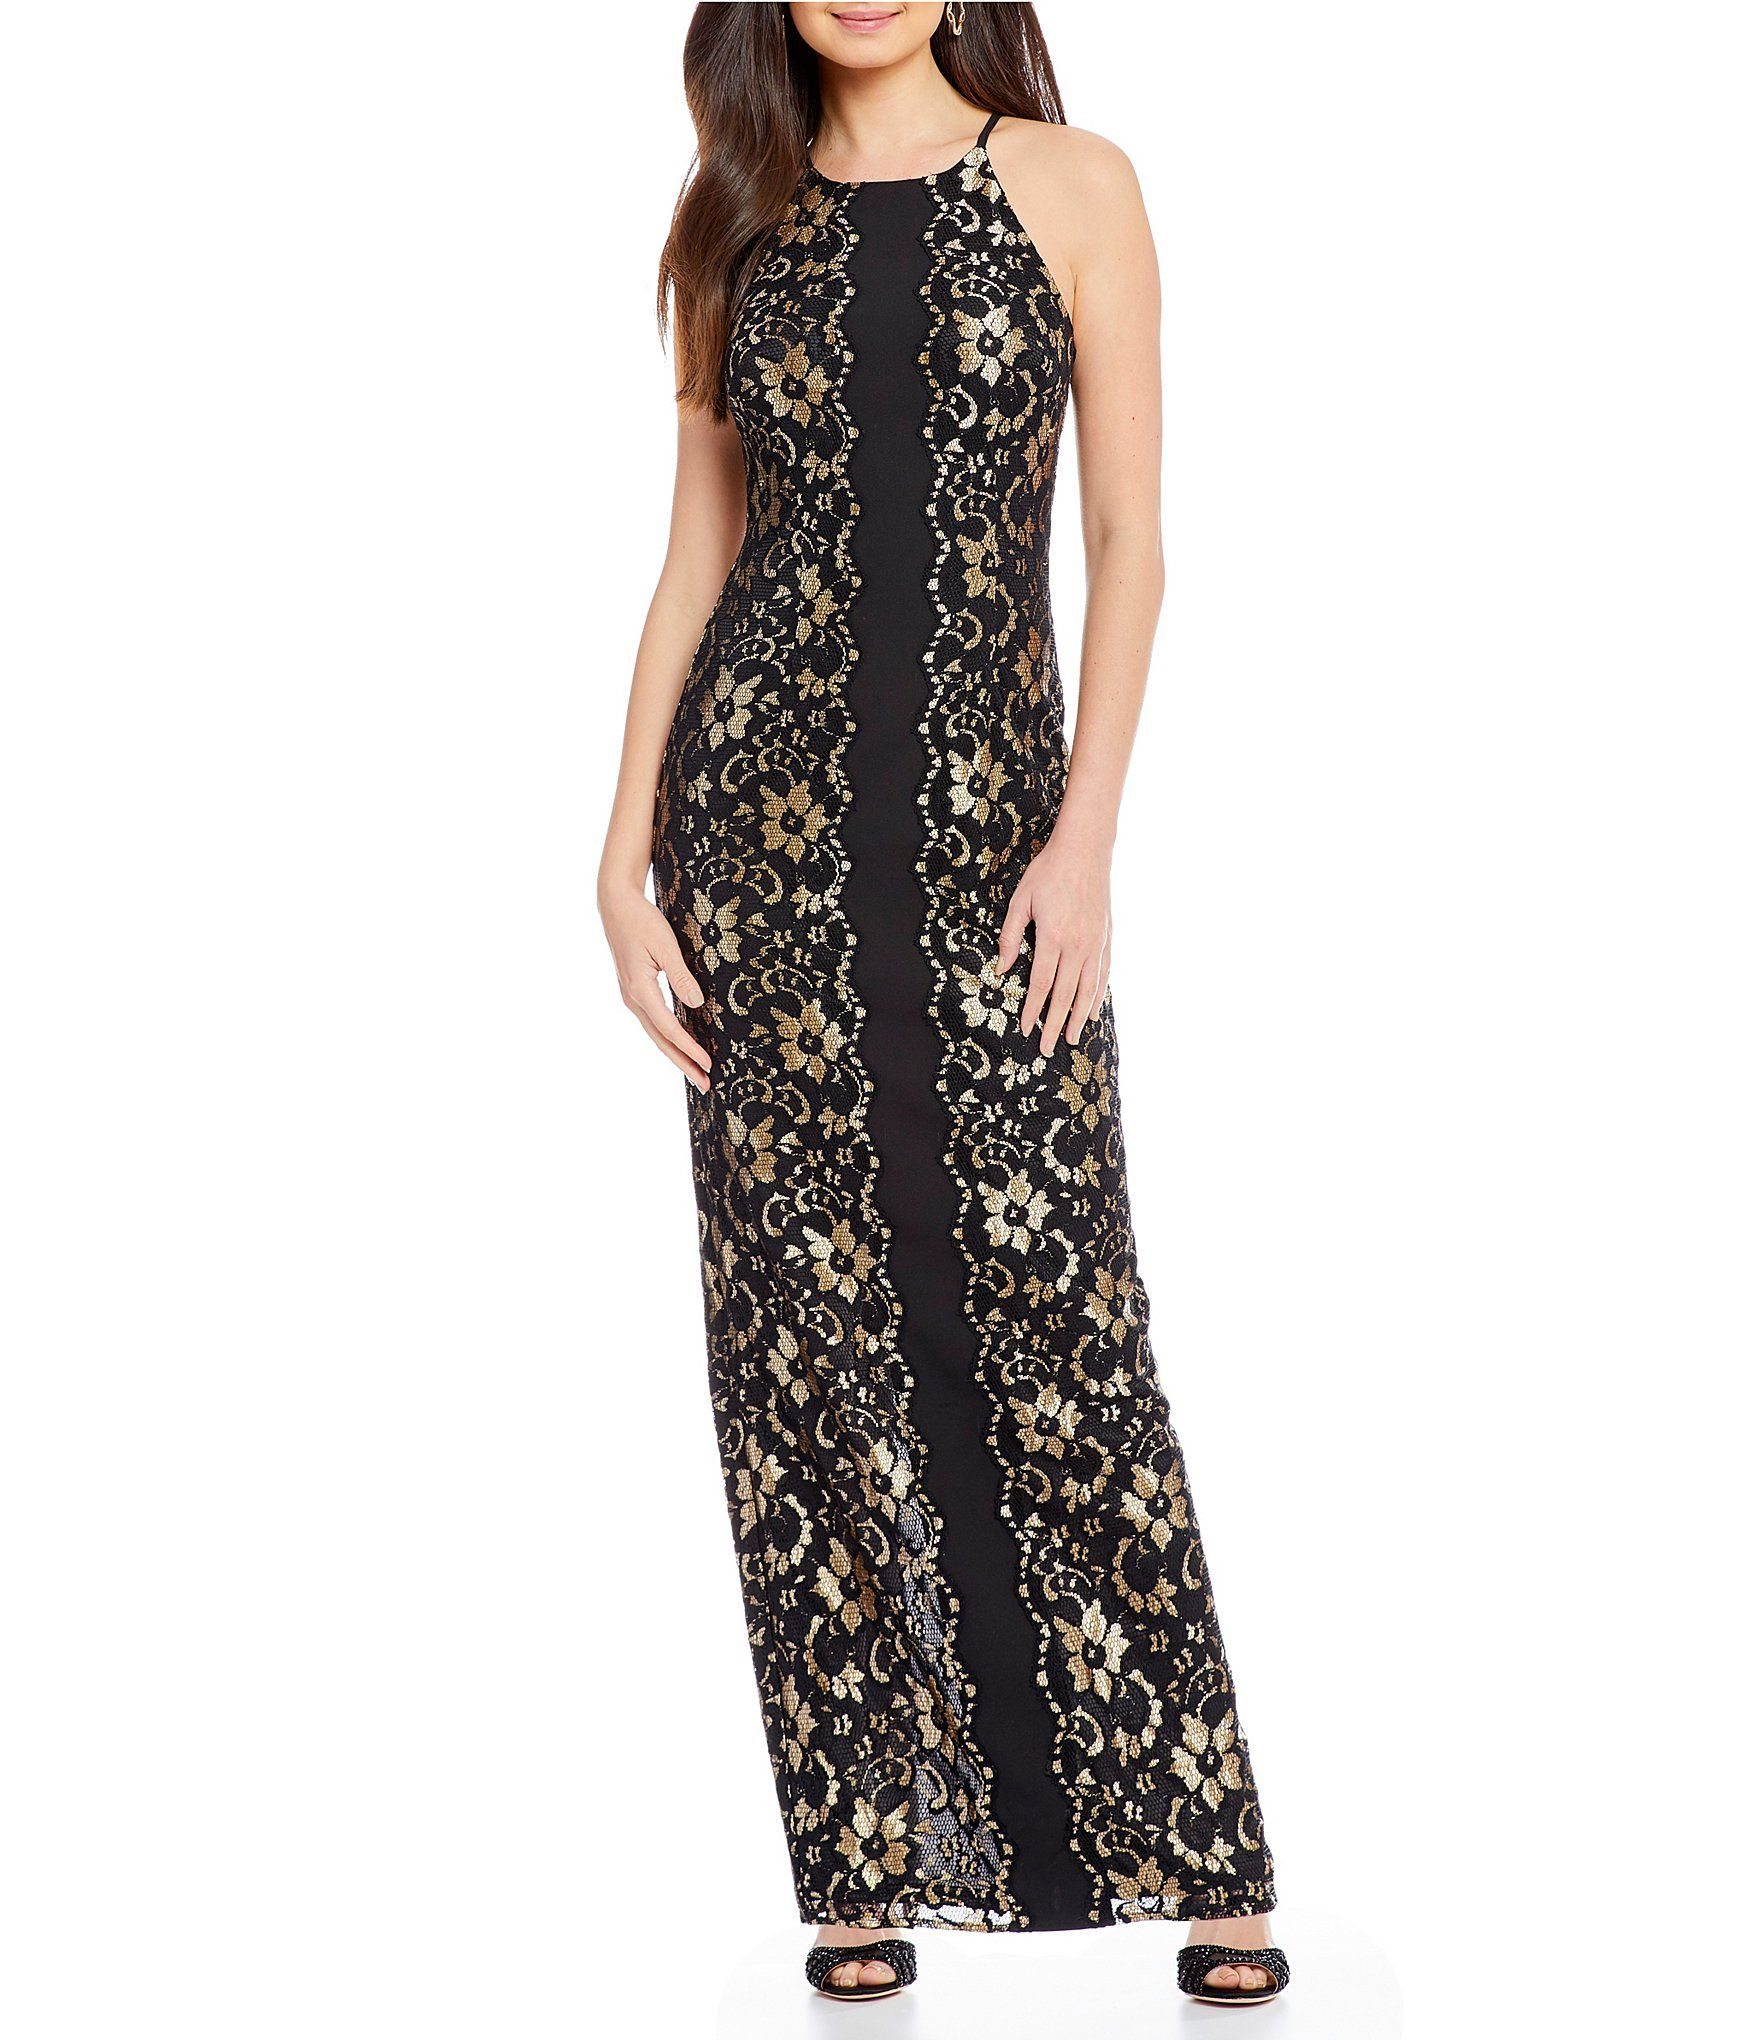 Belle Badgley Mischka Wenda Lace Floral Gown | Badgley mischka ...